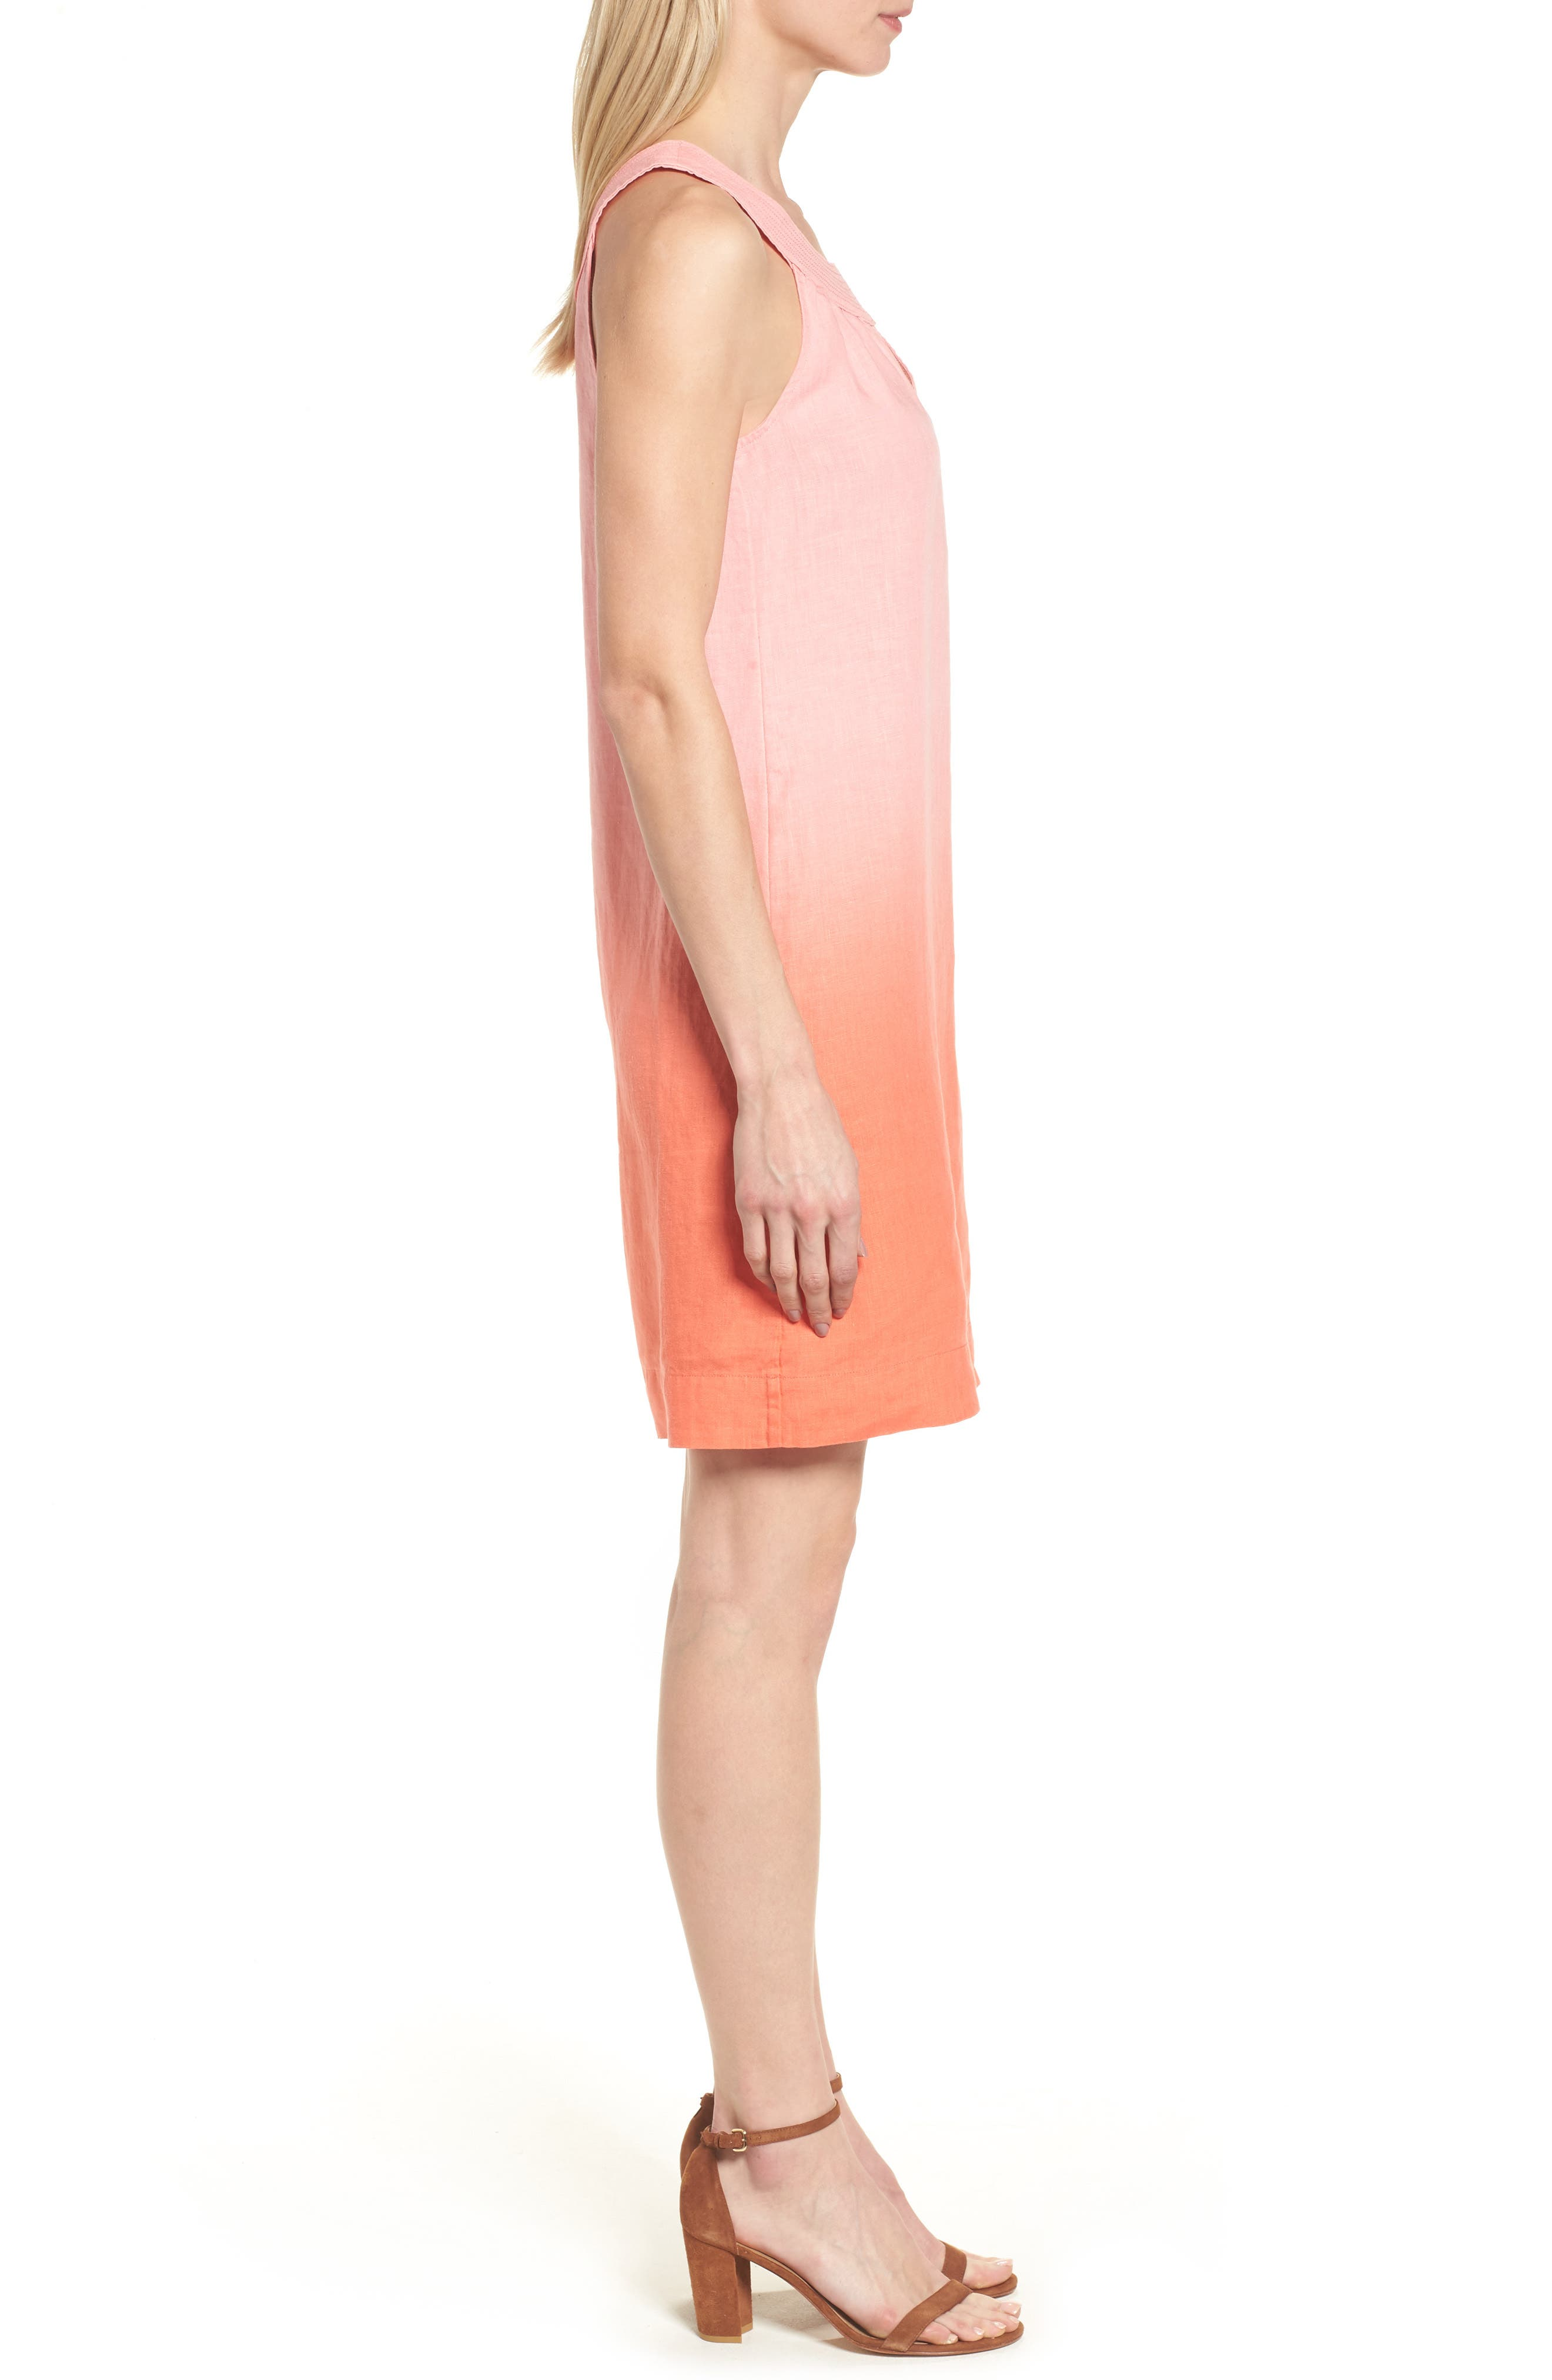 Two Palms Short Sundress,                             Alternate thumbnail 3, color,                             CABANA PINK/ BURNT CORAL